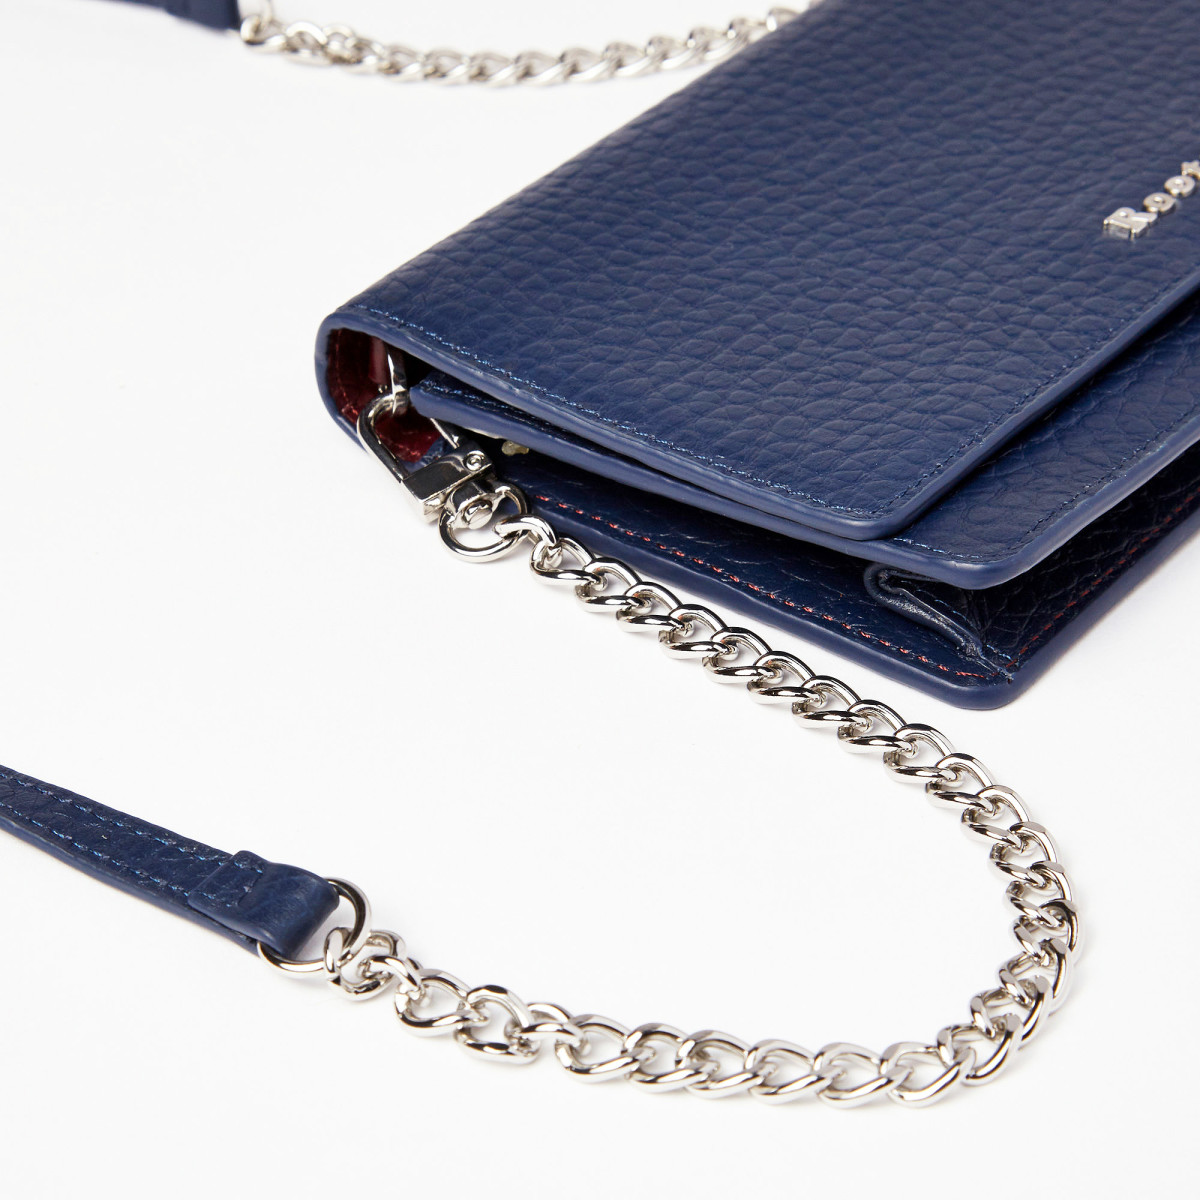 Roots Evening Wallet in Midnight Blue Prince leather with a removable shoulder strap